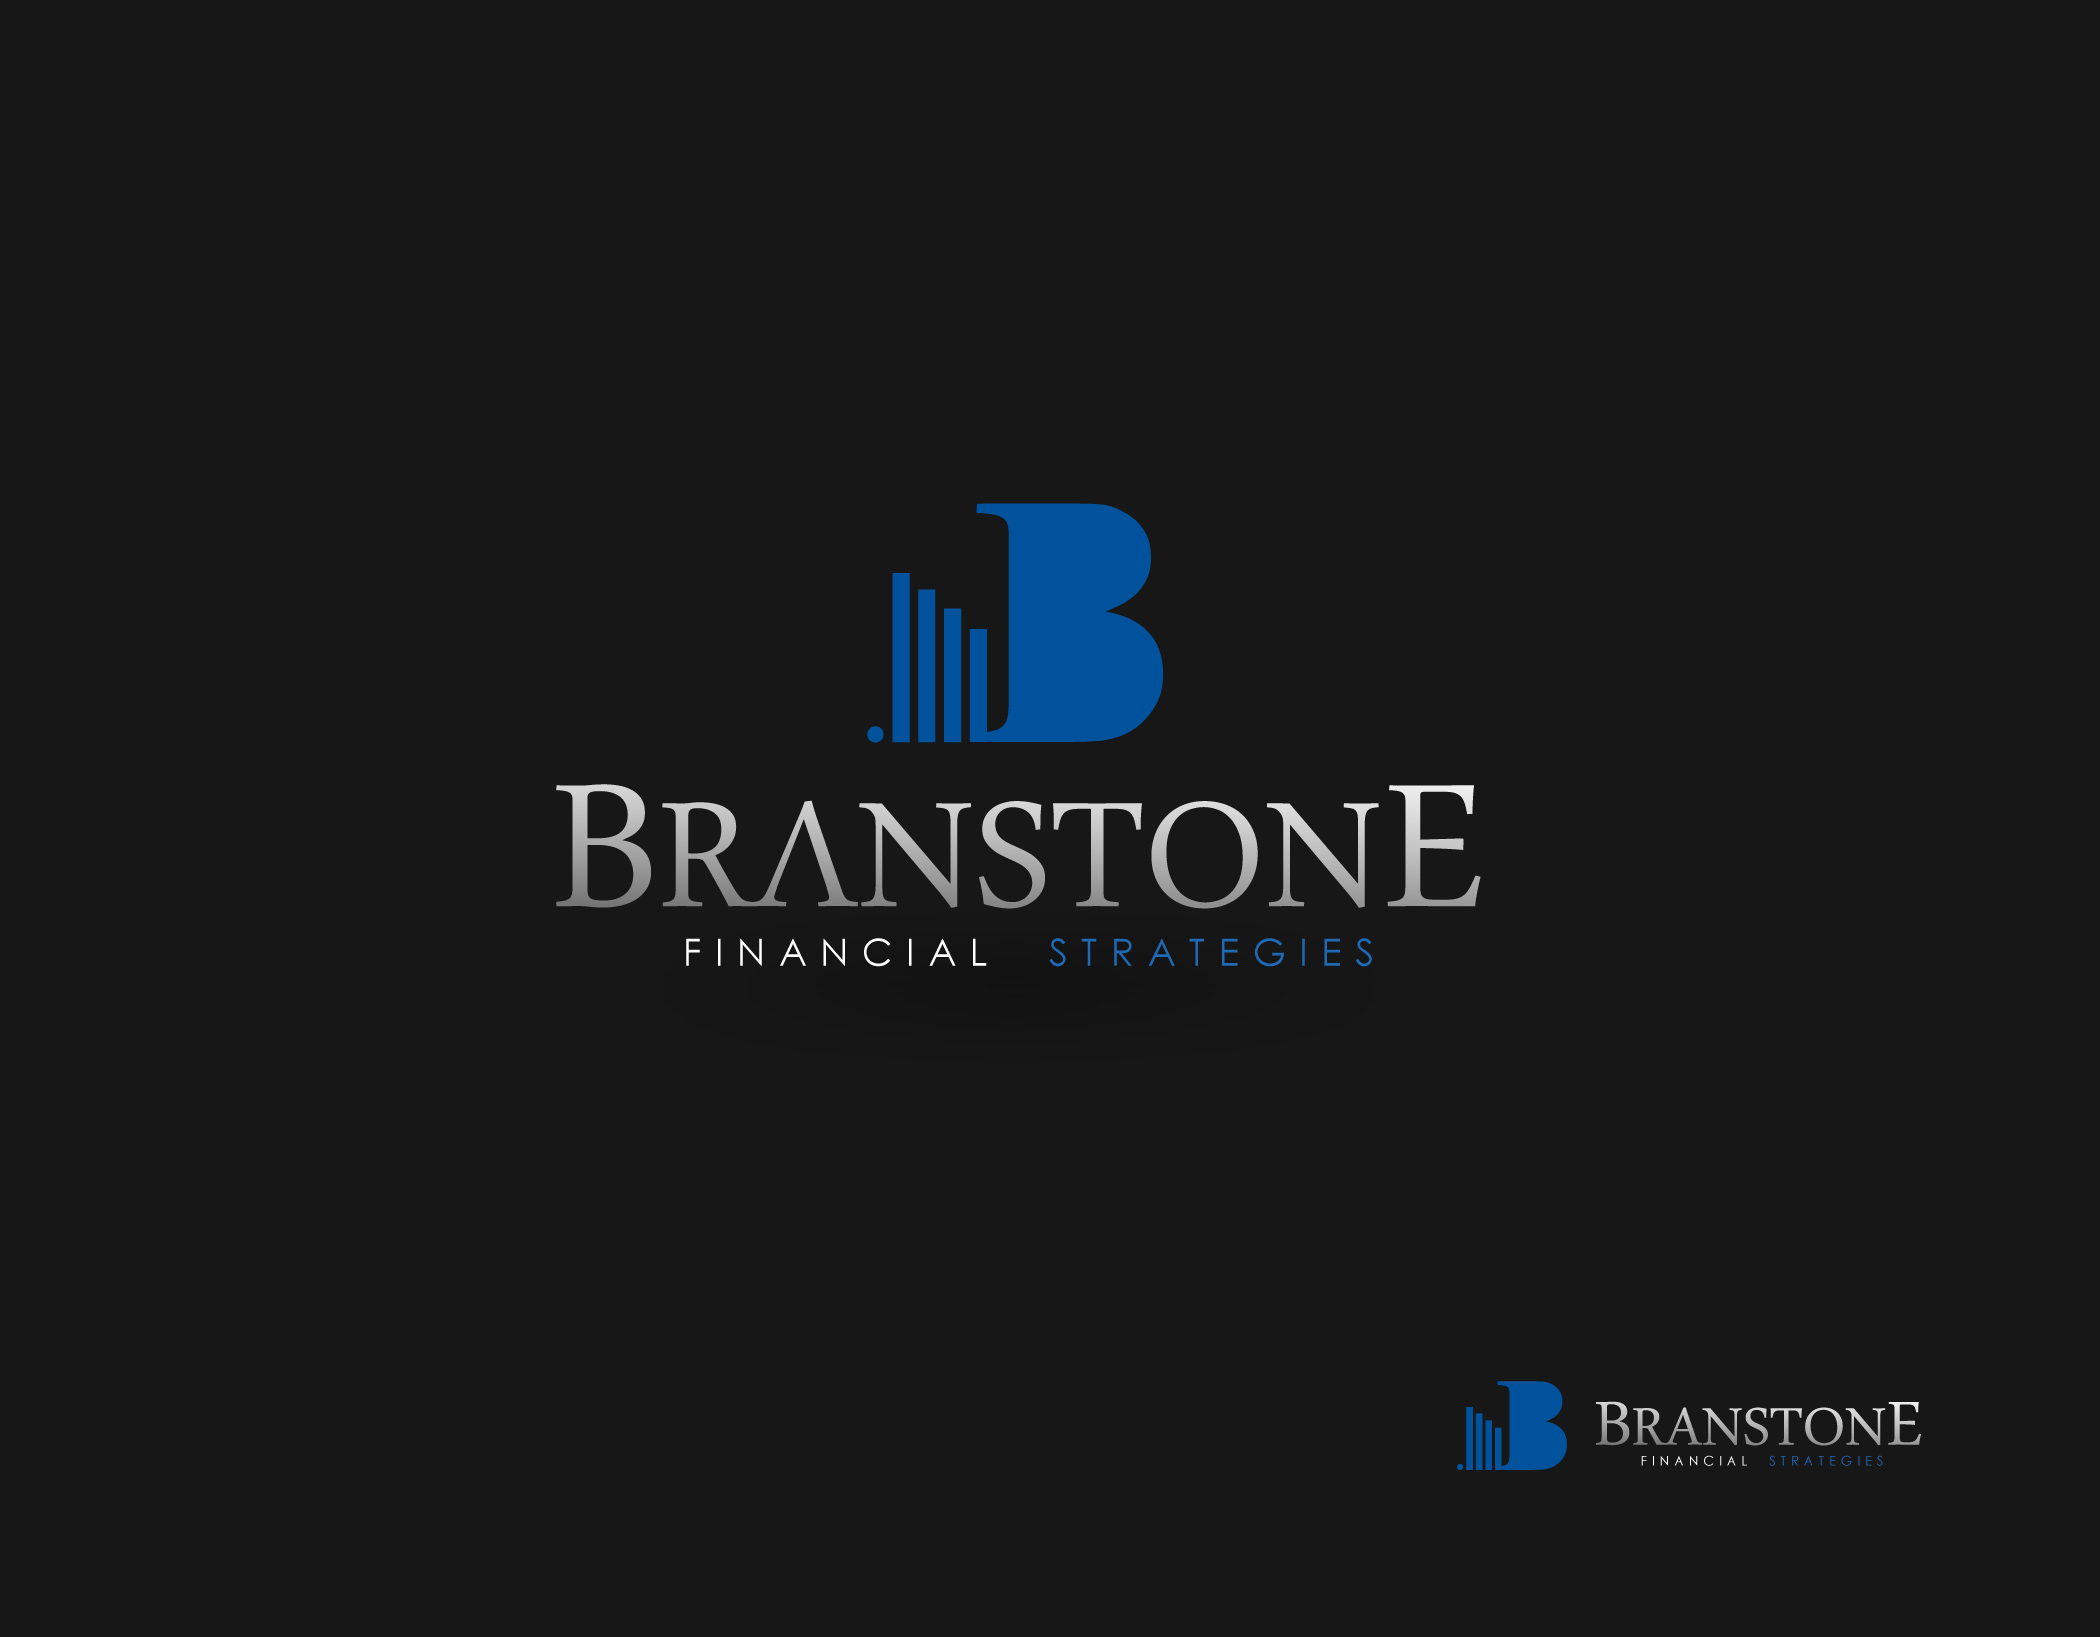 Logo Design by Mark Anthony Moreto Jordan - Entry No. 274 in the Logo Design Contest Inspiring Logo Design for Branstone Financial Strategies.